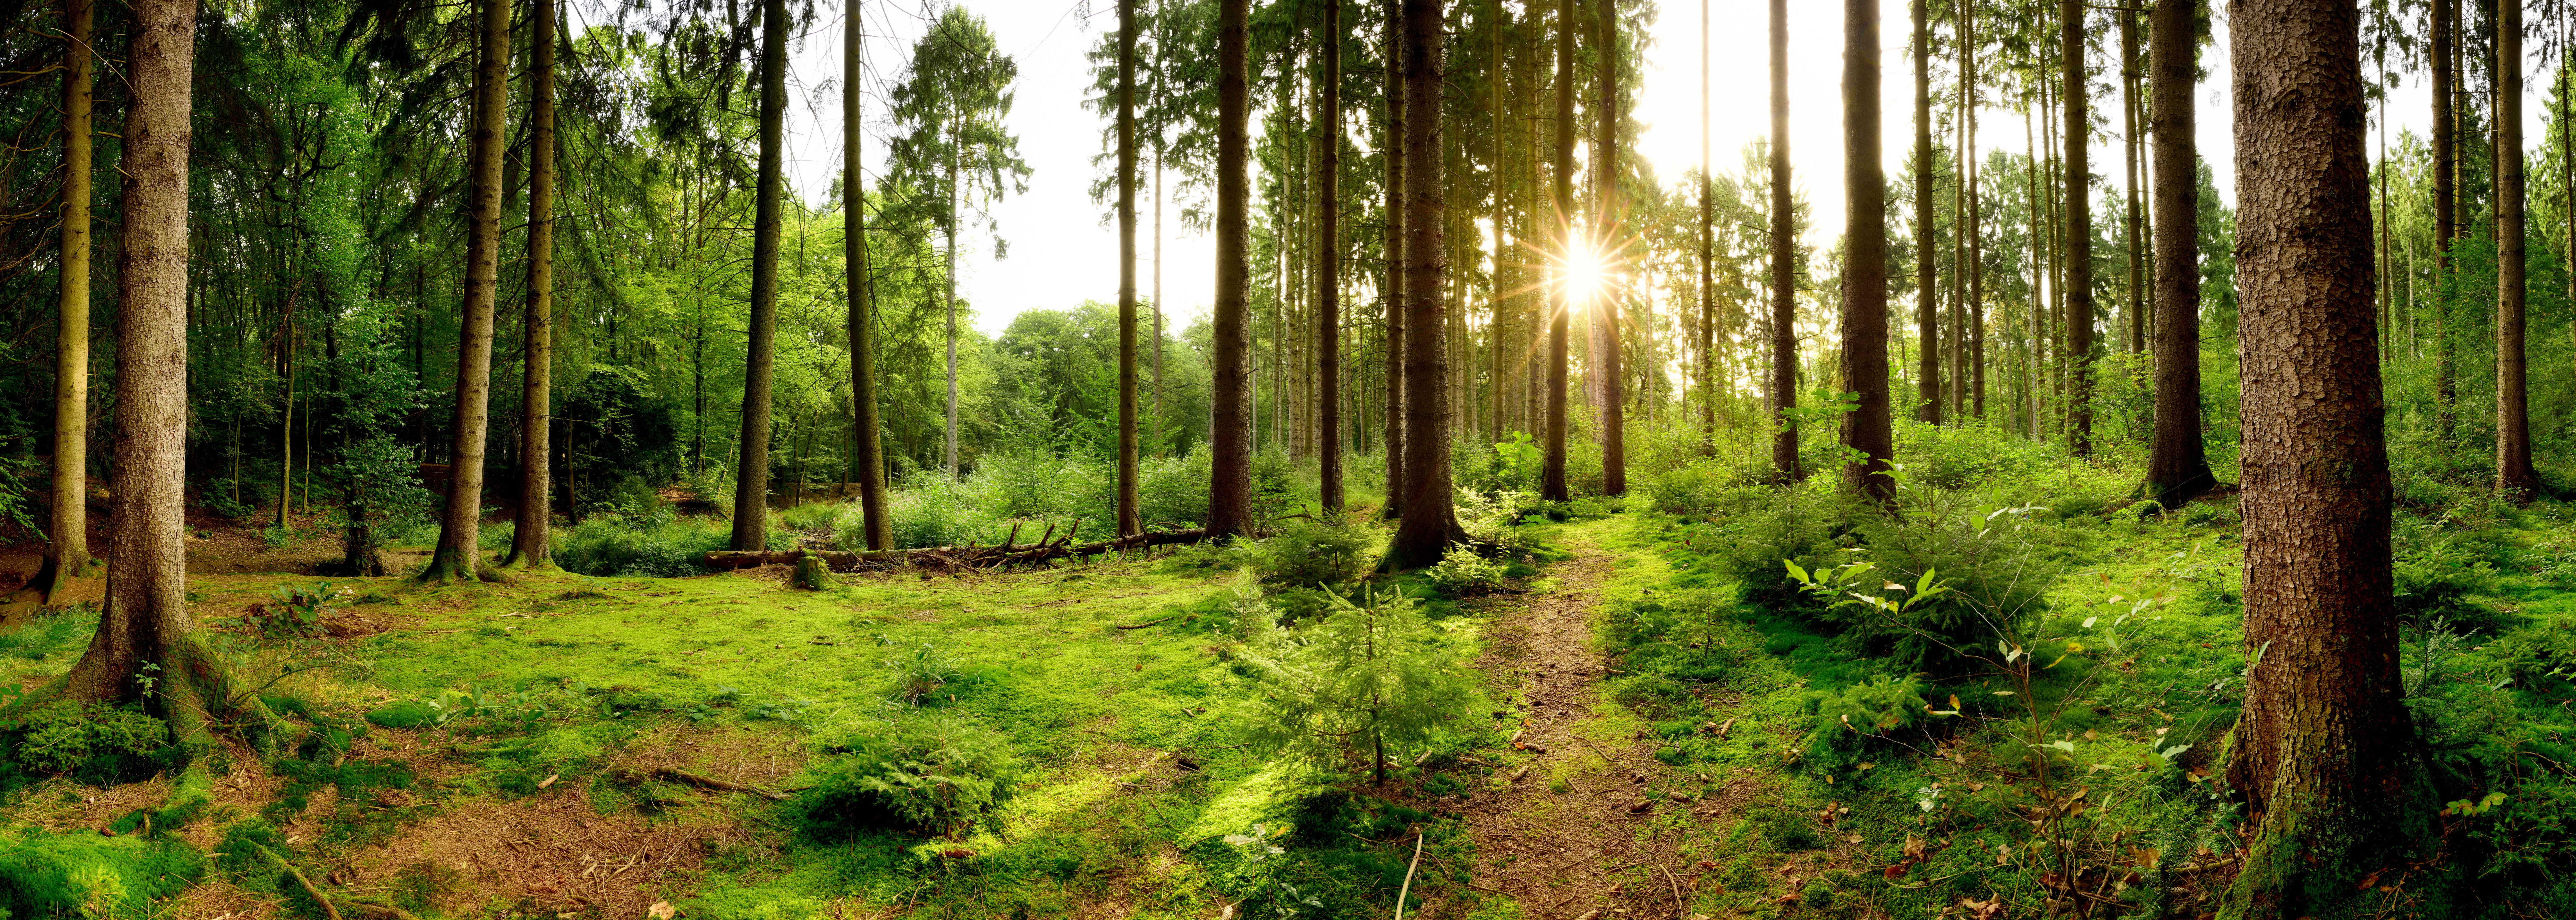 Forestry firms, funds and projects for International Day of Forests